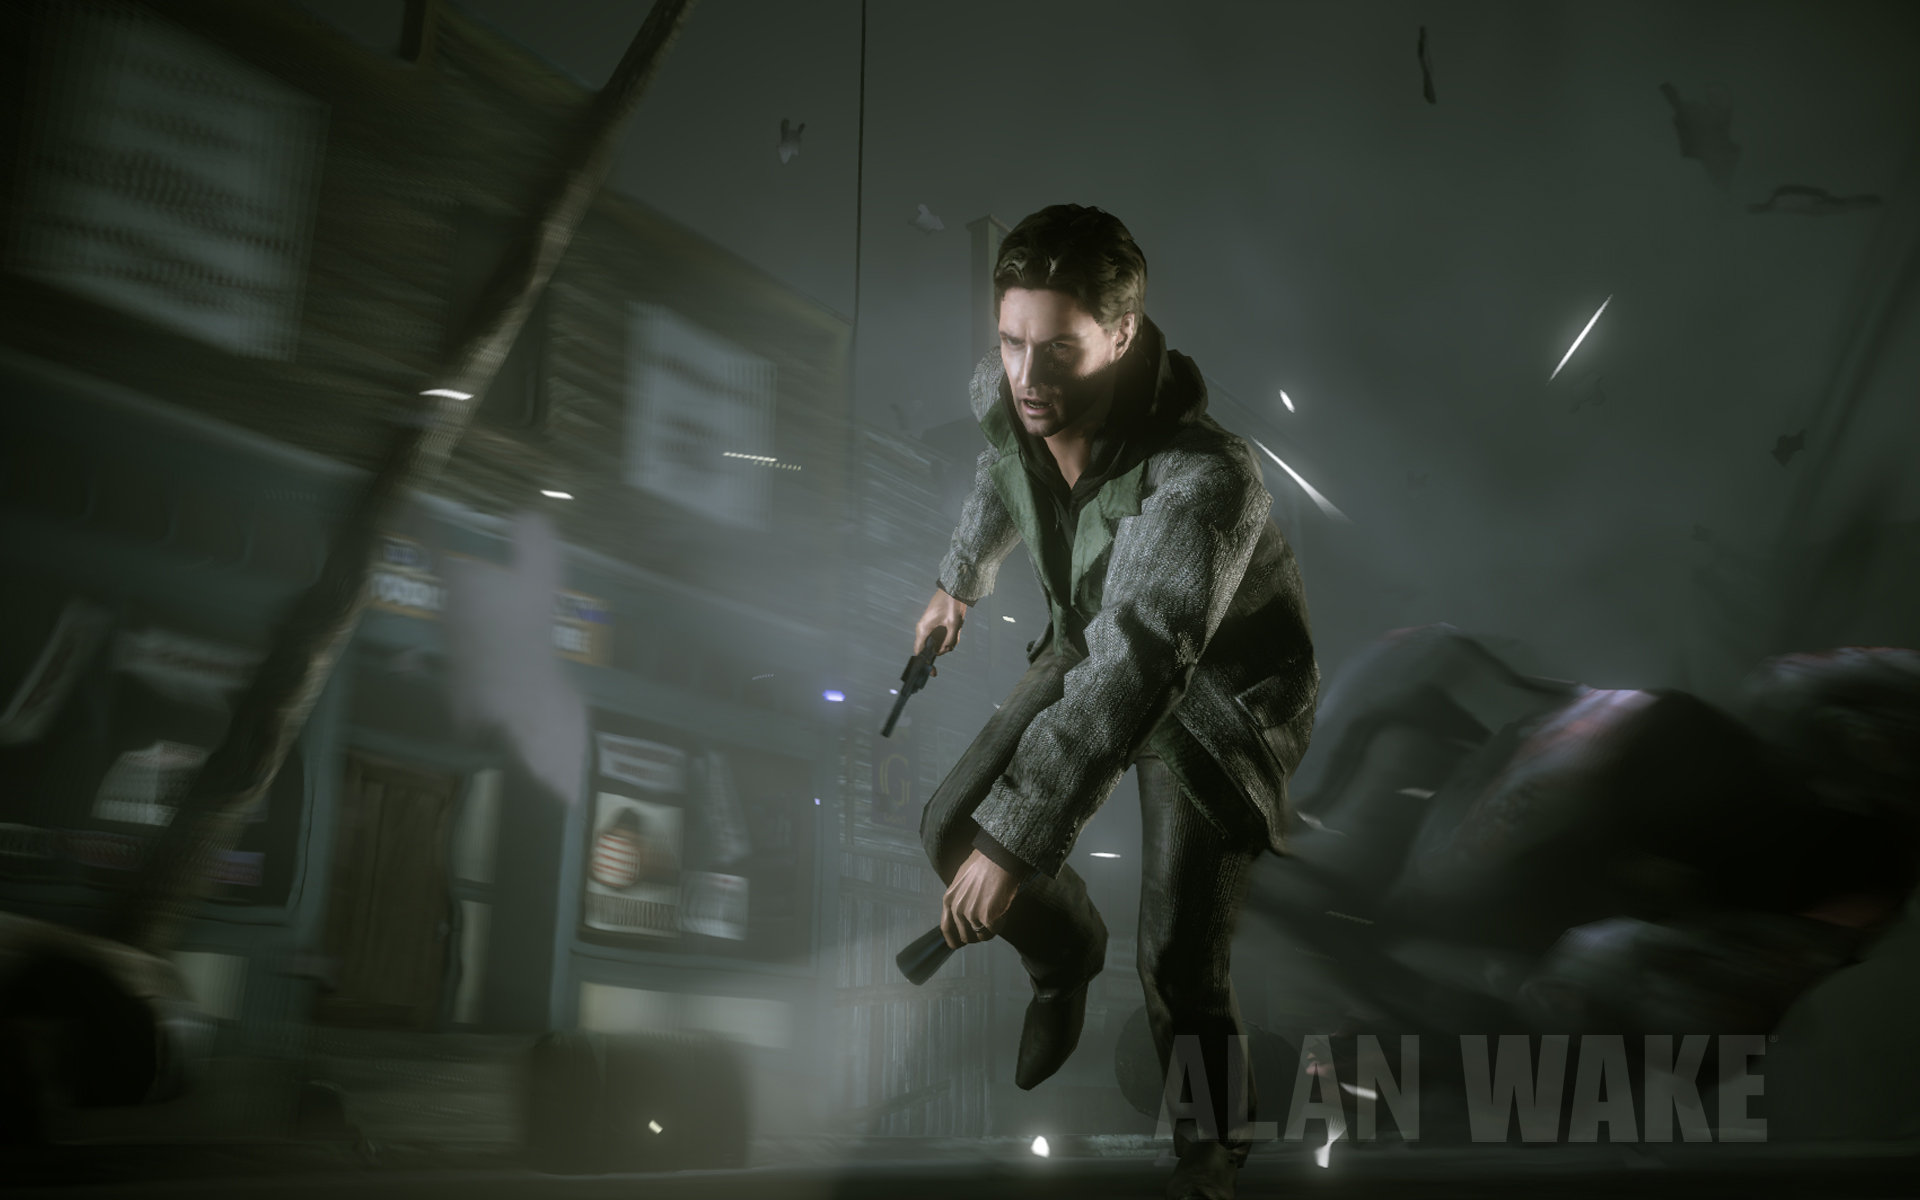 alan wake narrative gaming